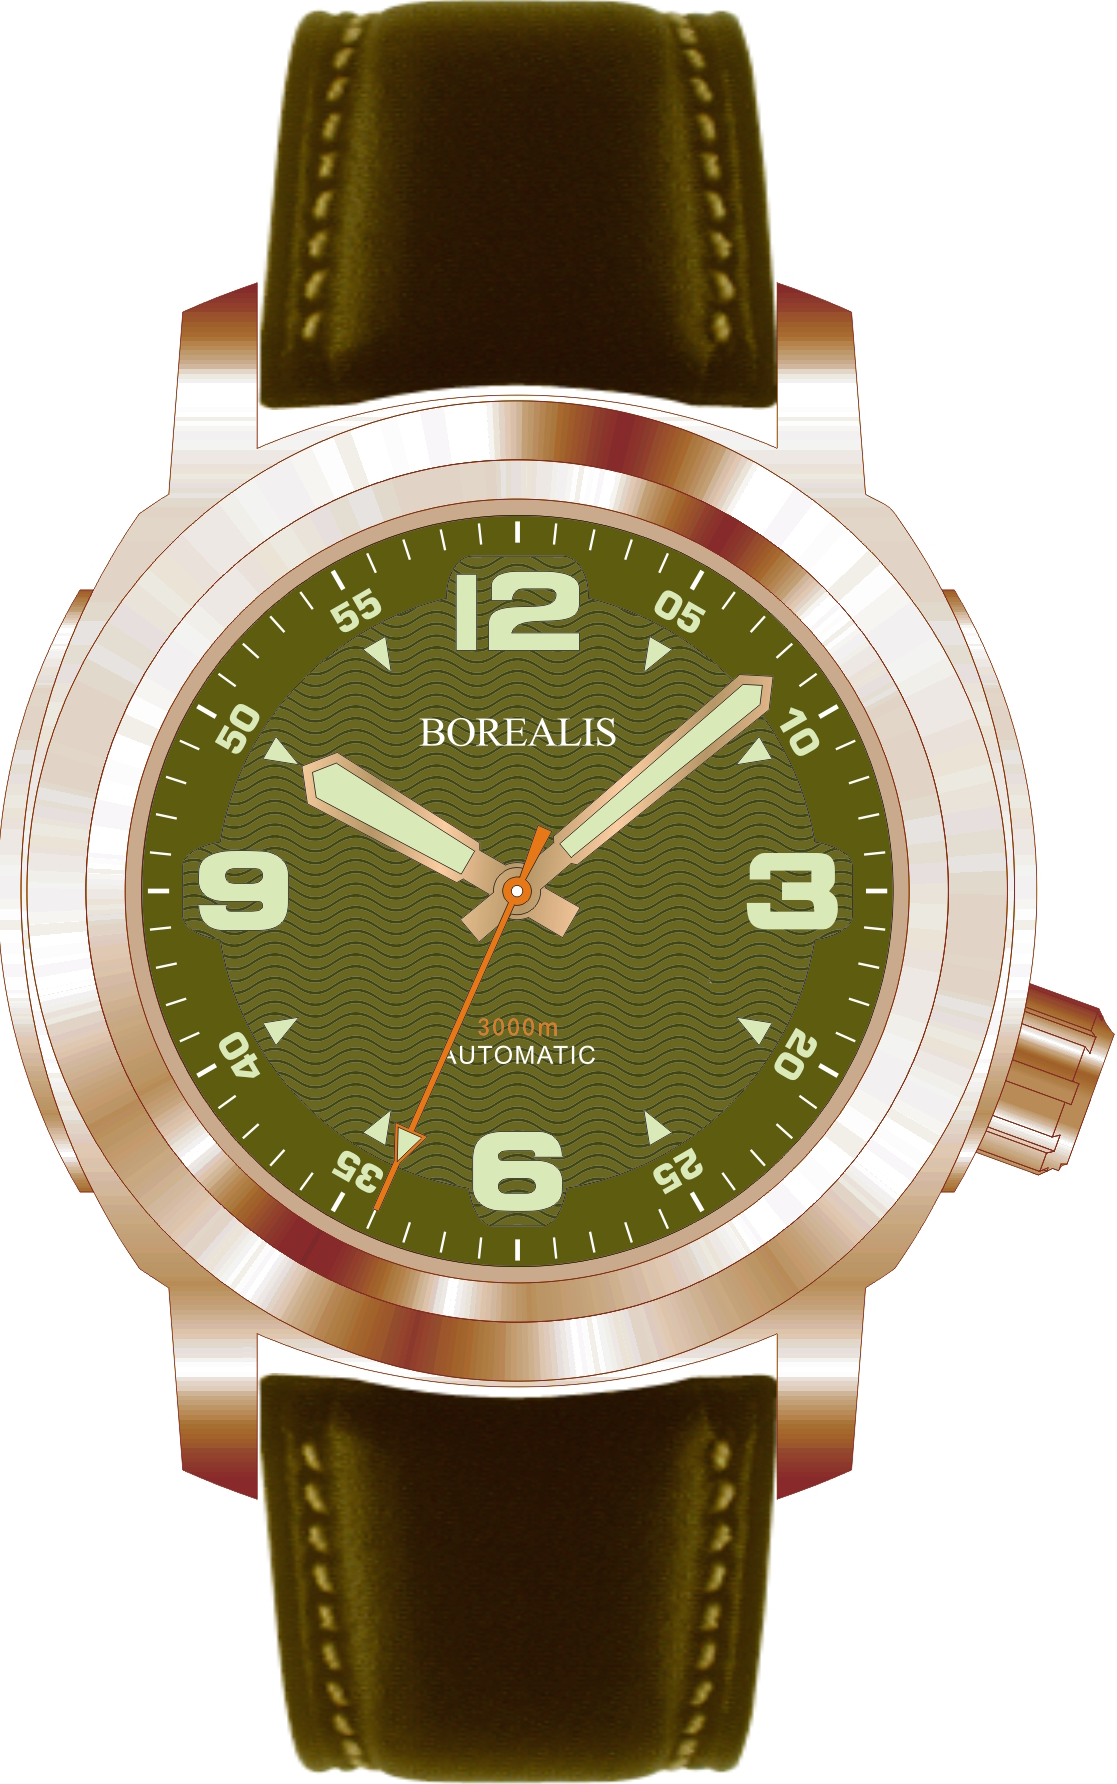 Borealis Batial Bronze CuSn8 Green 3000m Miyota 9015 Automatic Diver Watch No Date Display BBCUSN8GREENNODATE